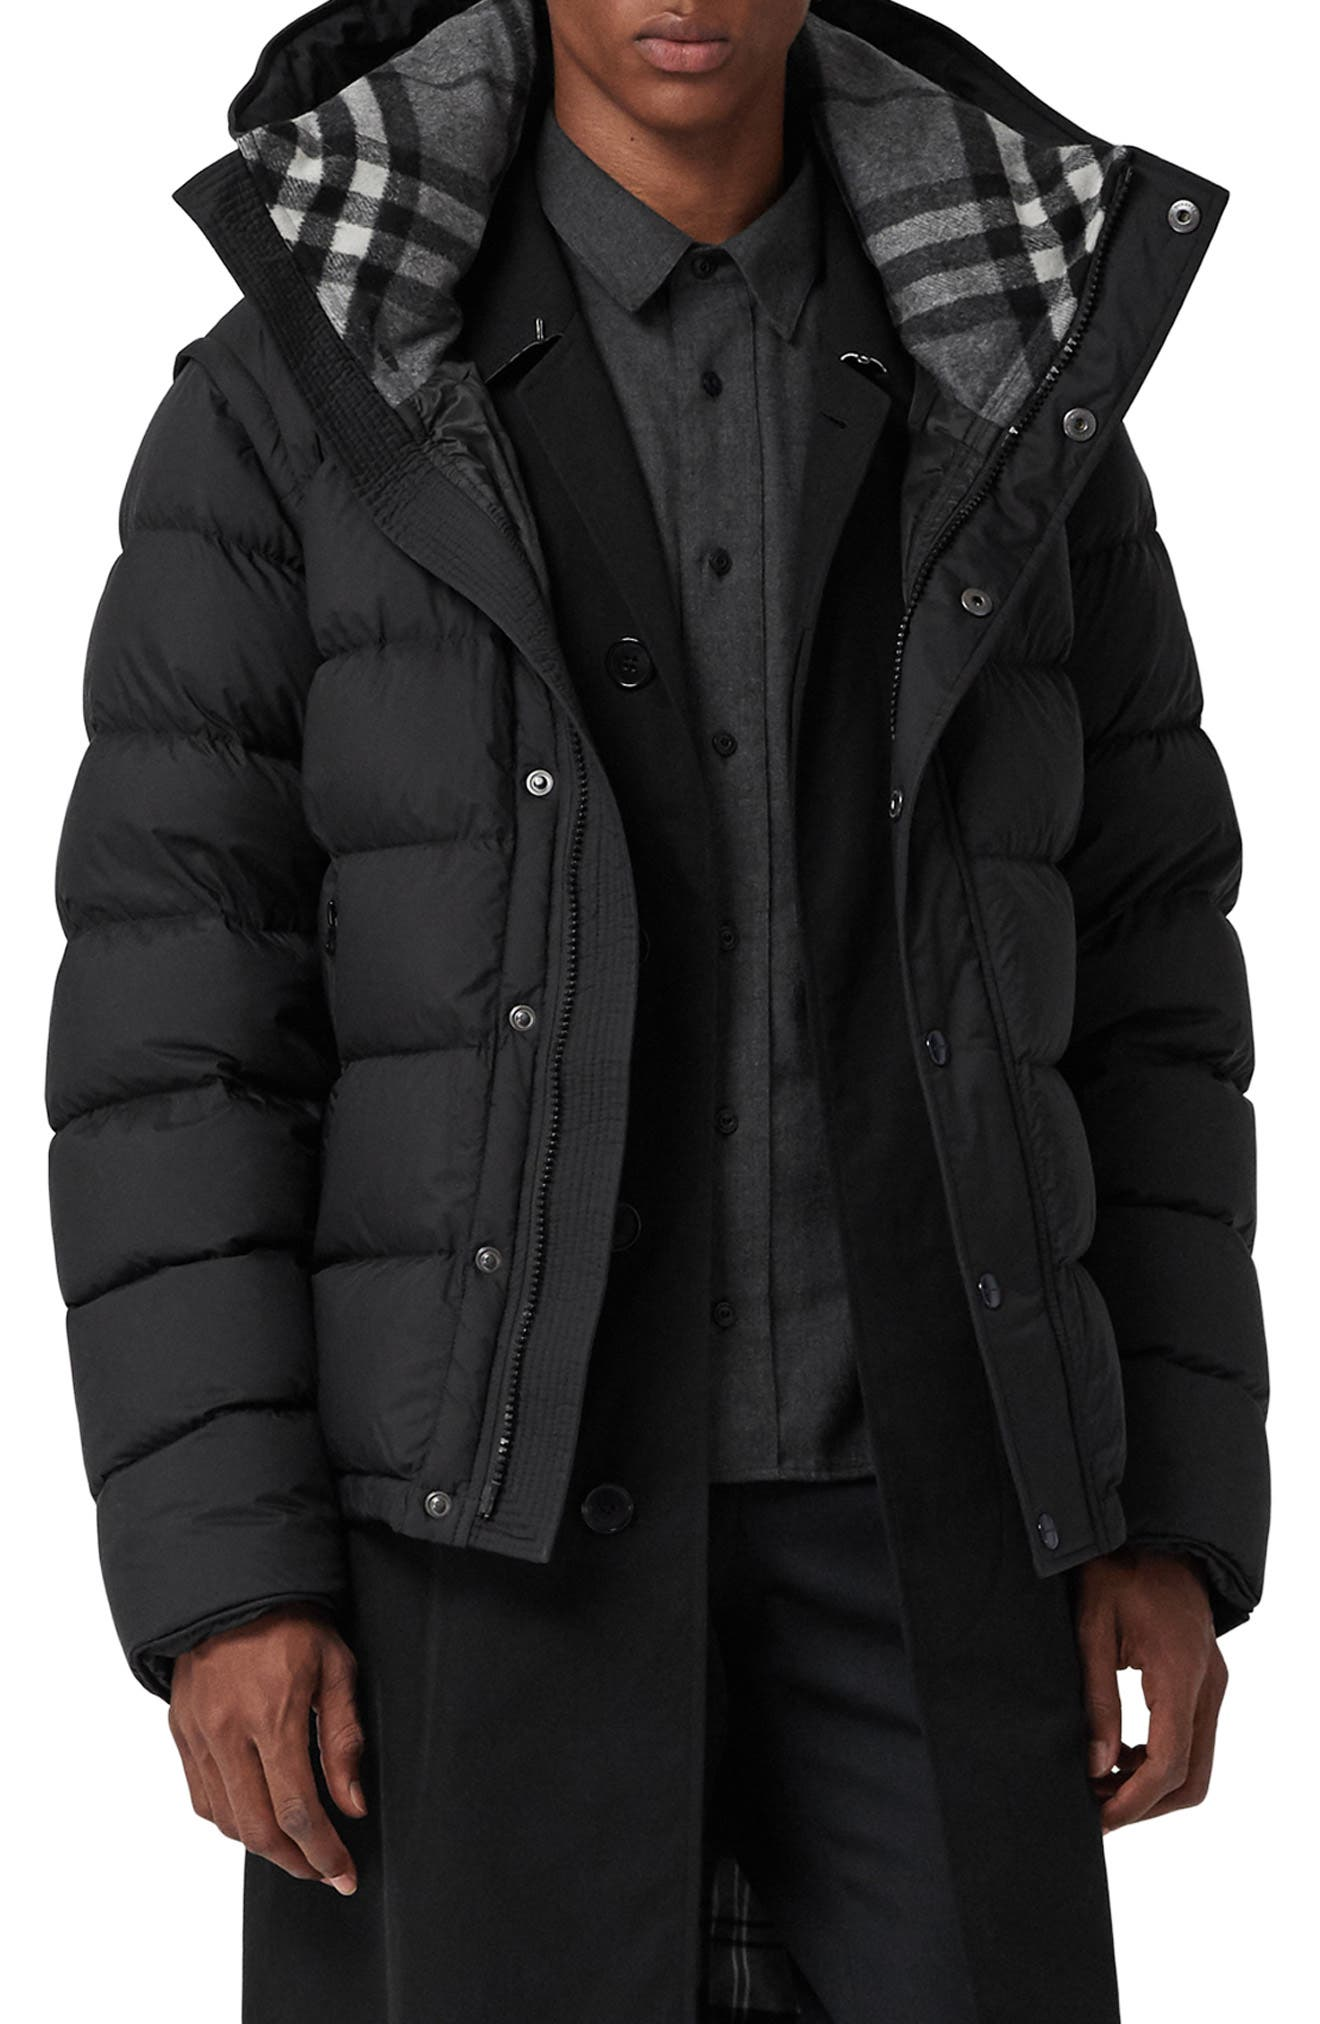 Hartley Hybrid Jacket with Detachable Sleeves,                         Main,                         color, 001